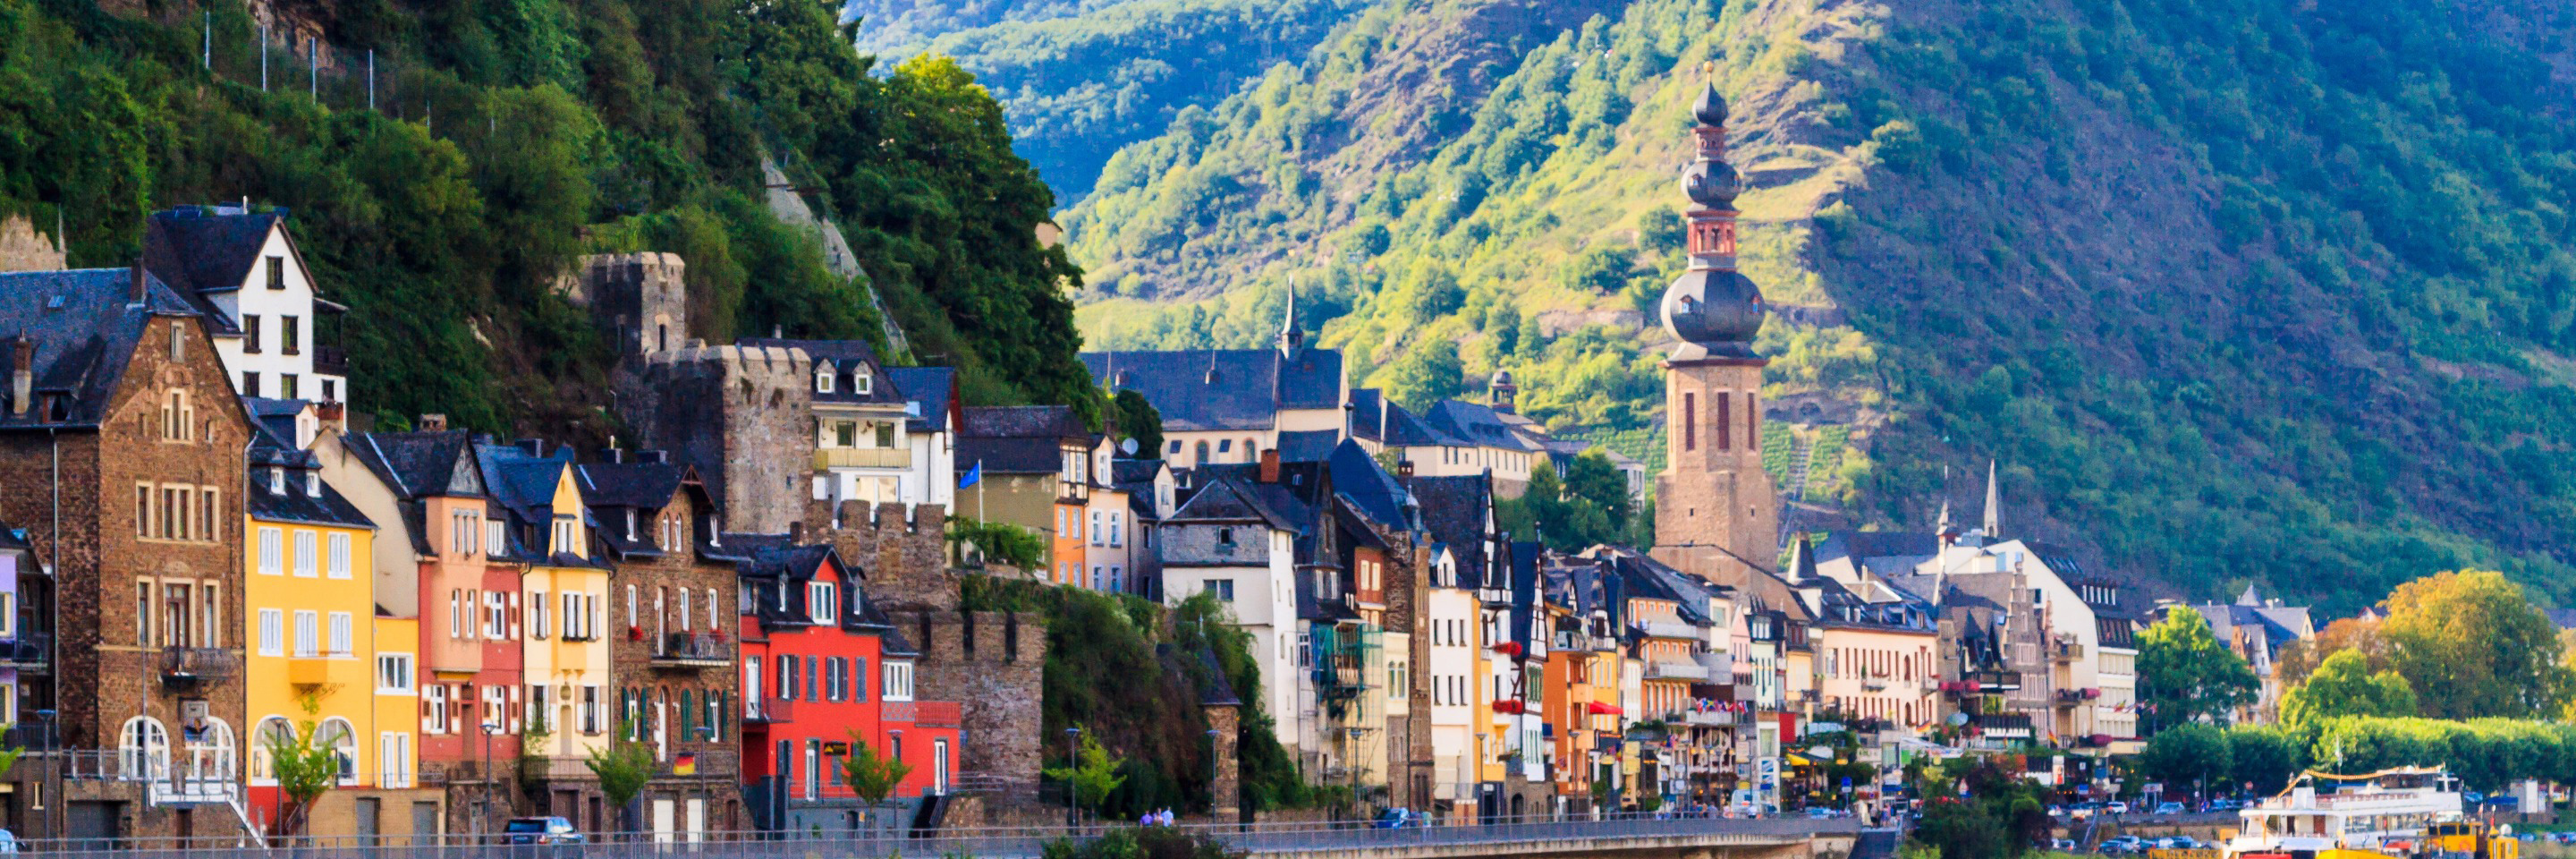 The Rhine & Moselle: Canals, Vineyards & Castles with   1 Night in Amsterdam & 2 Nights in Paris for Wine Lovers